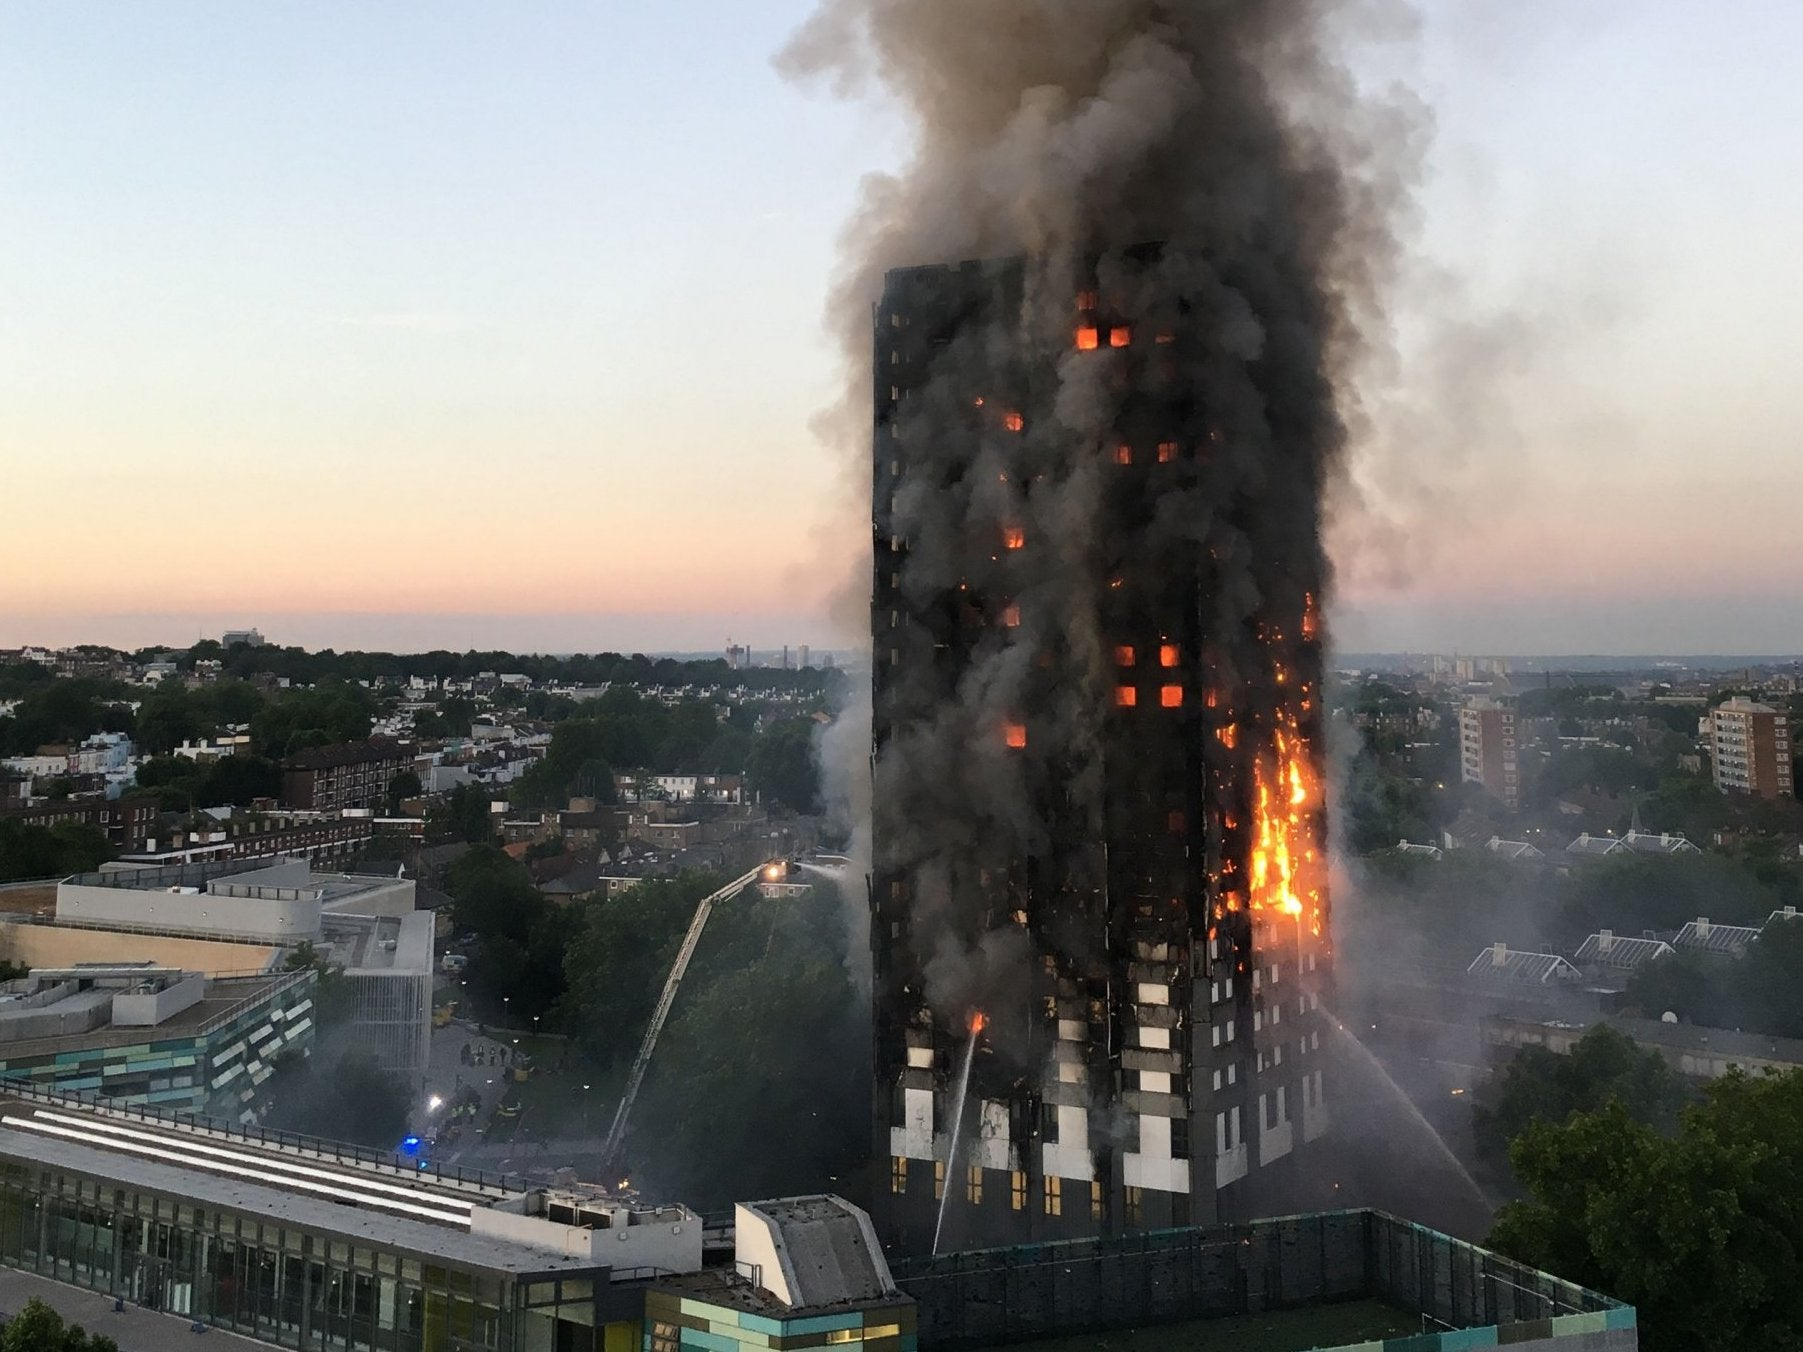 Grenfell Tower: Sentences for gross negligence manslaughter could increase after investigation into deadly fire